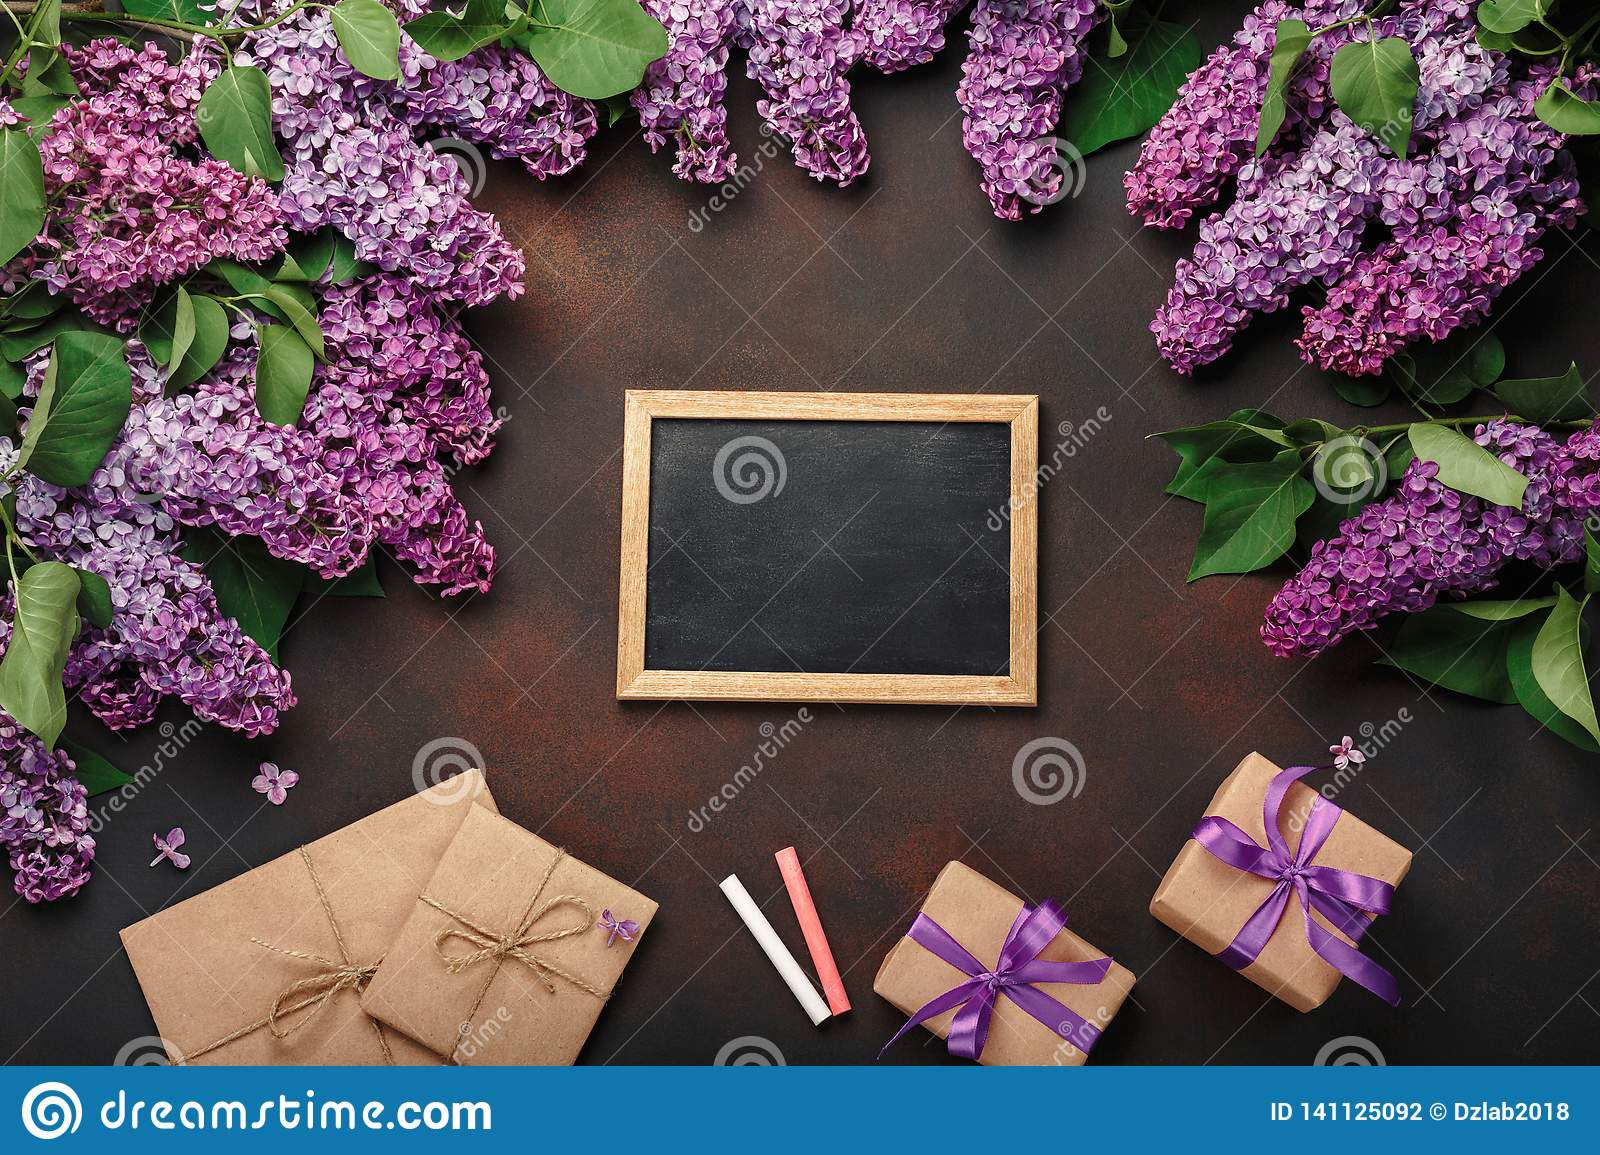 A bouquet of lilacs with chalk board, gift box, craft envelope on rusty background